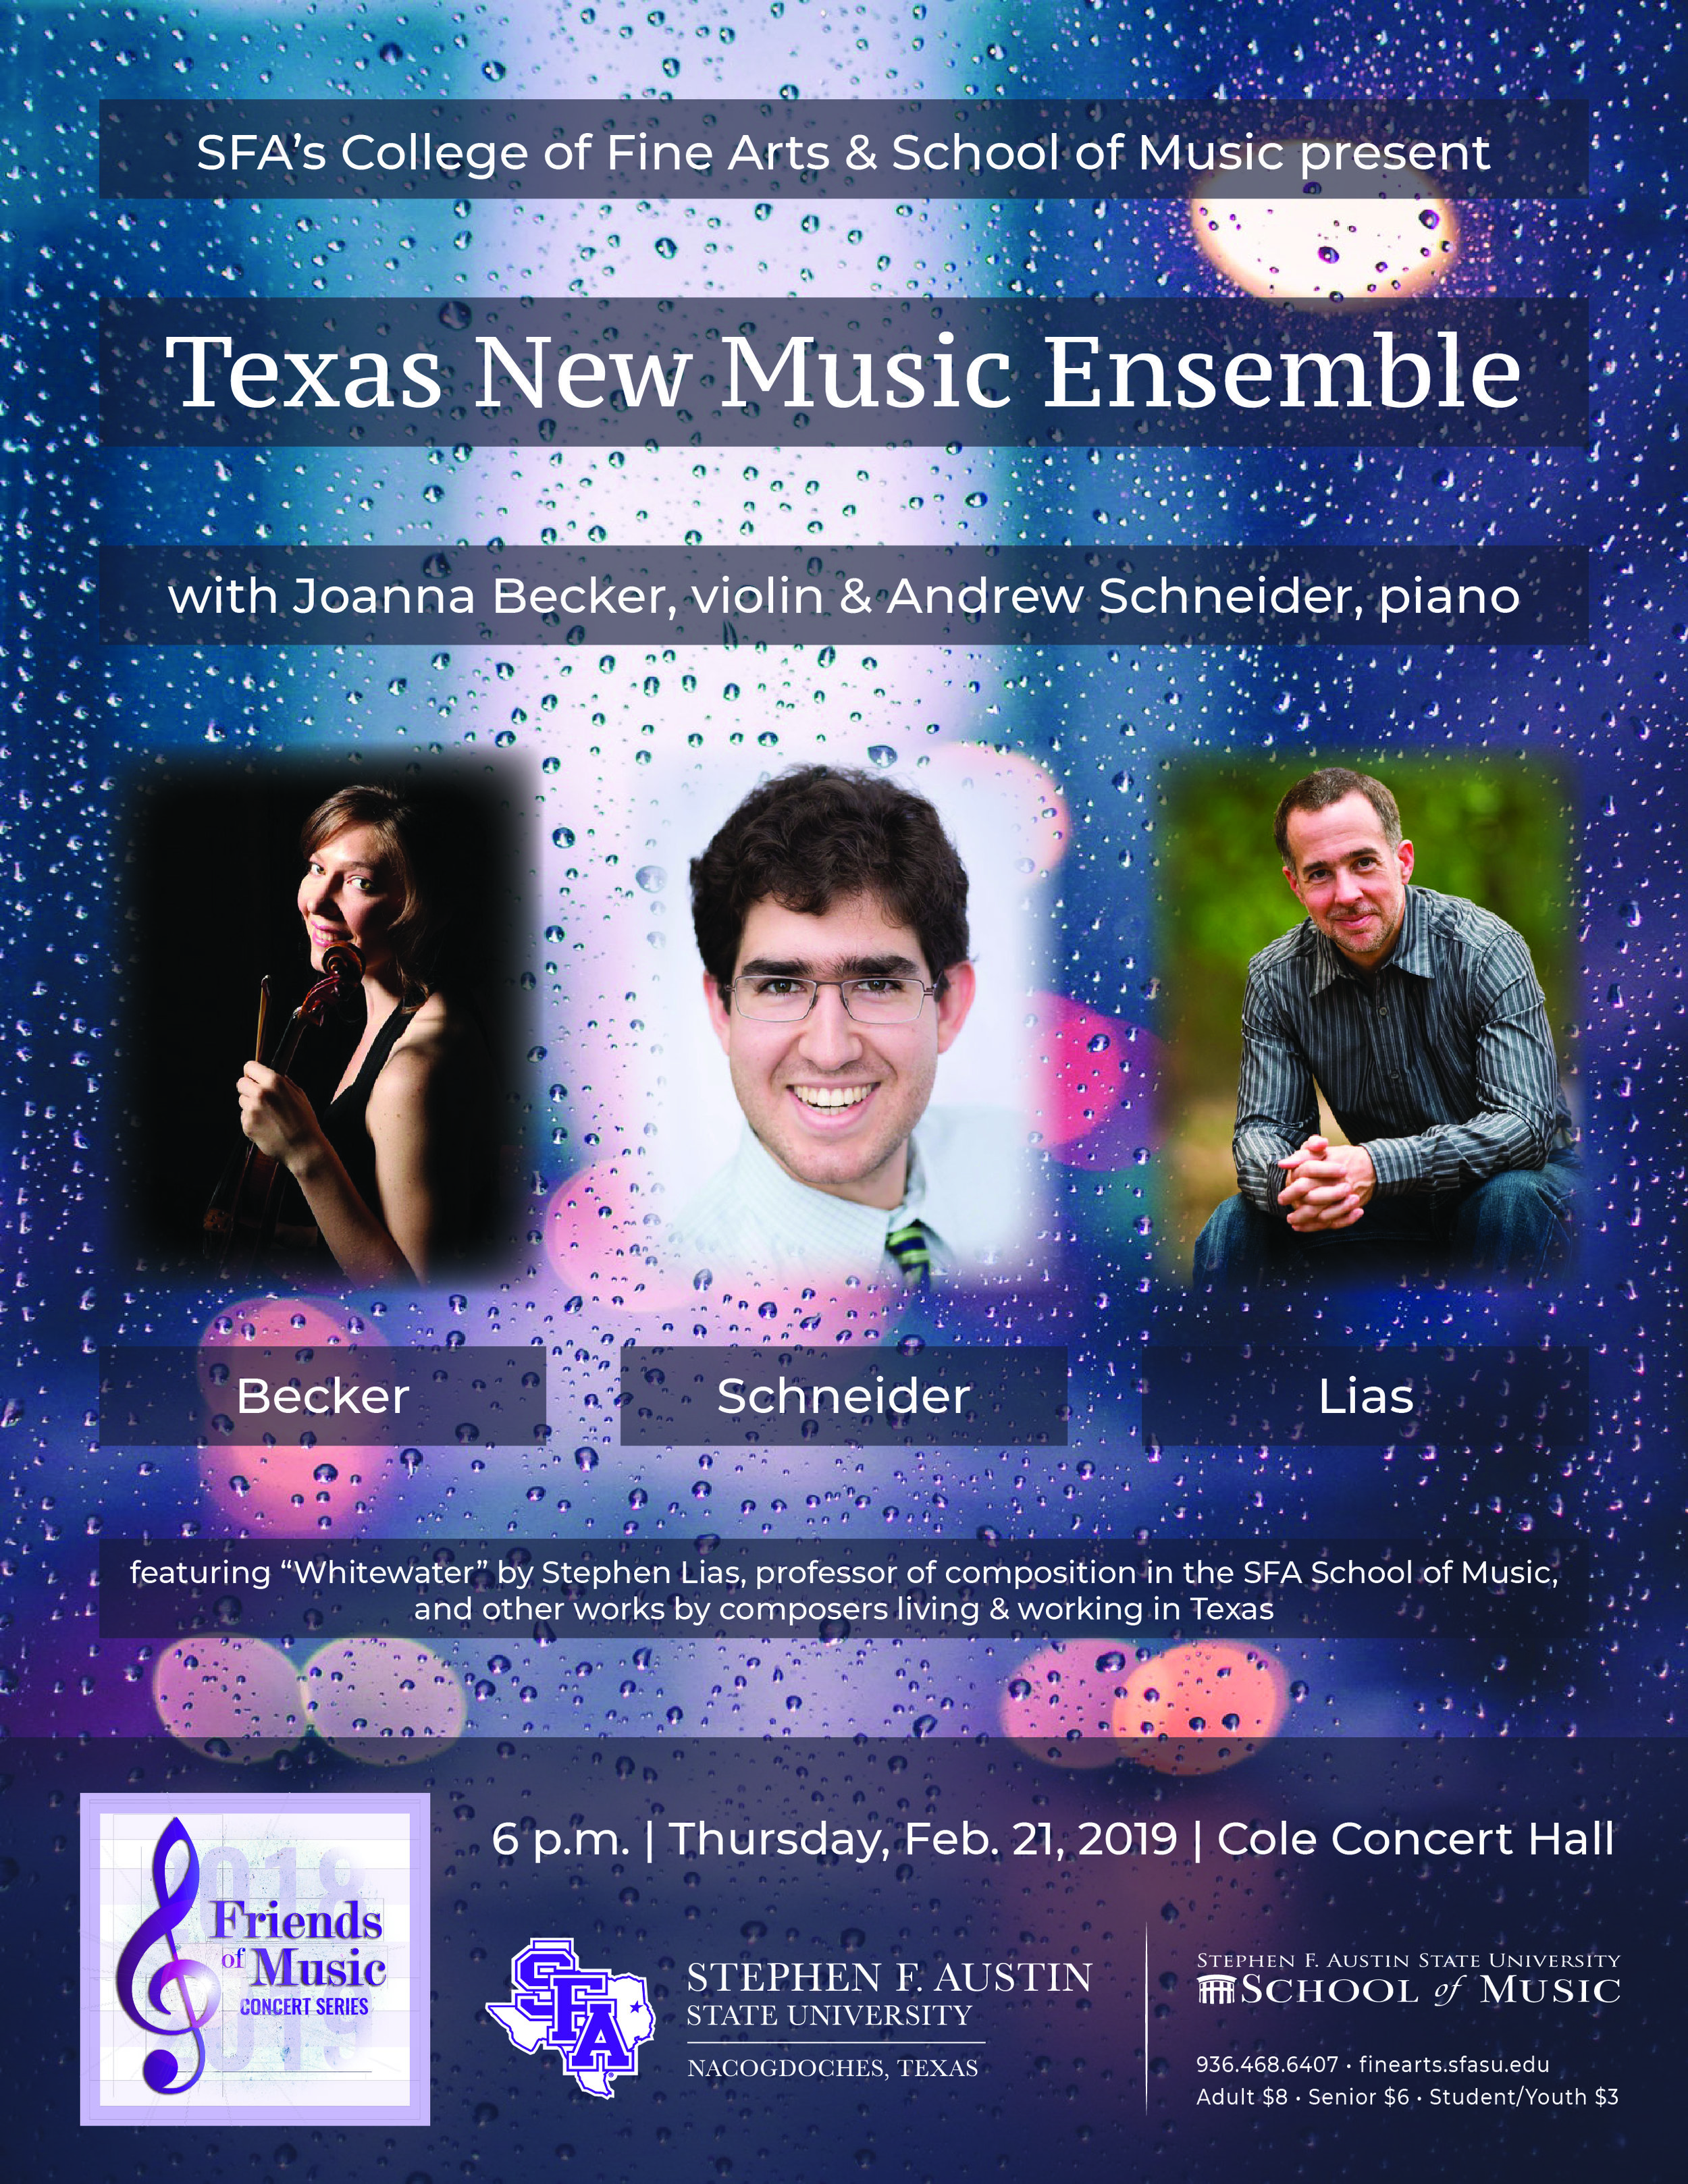 TexasNewMusicEnsemble-01.jpg